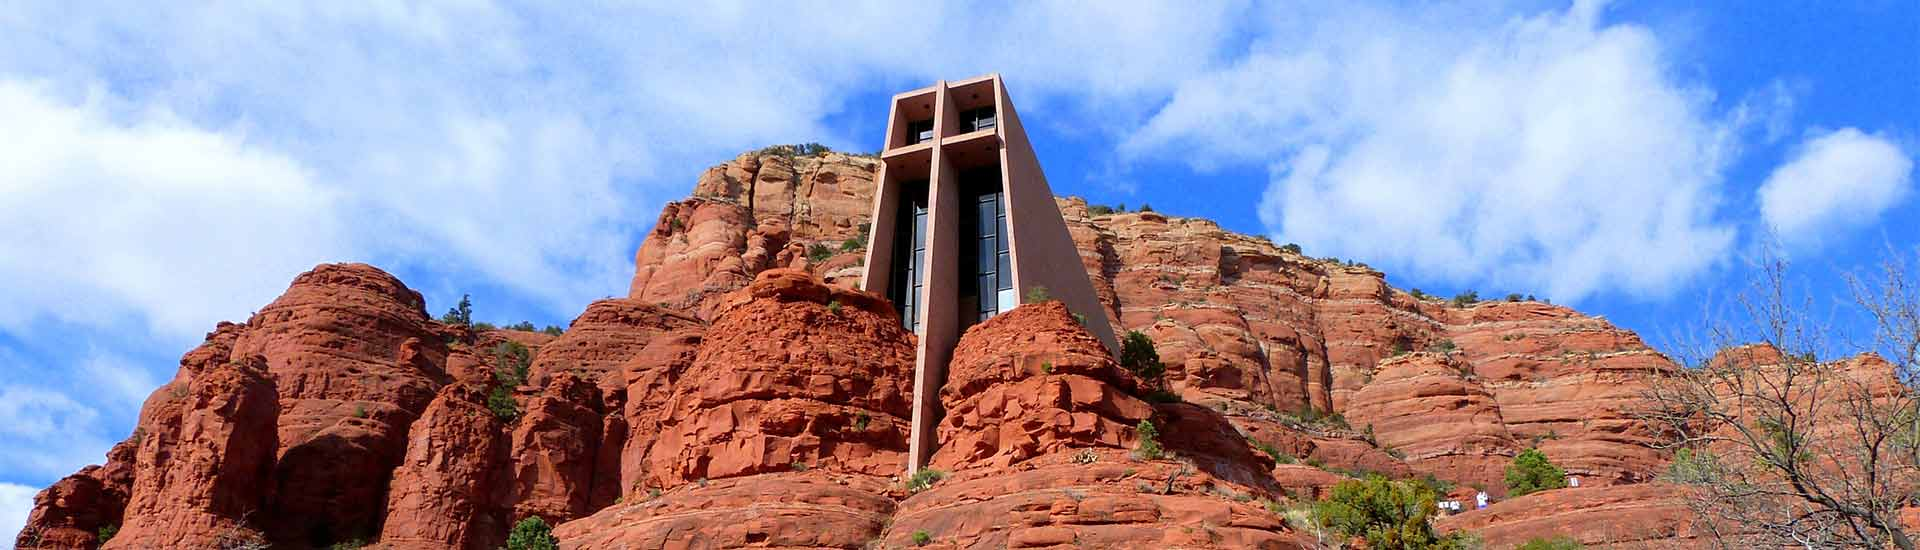 Chapel of the Holy Cross nestled into Sedona's red rocks with blue sky white clouds in back